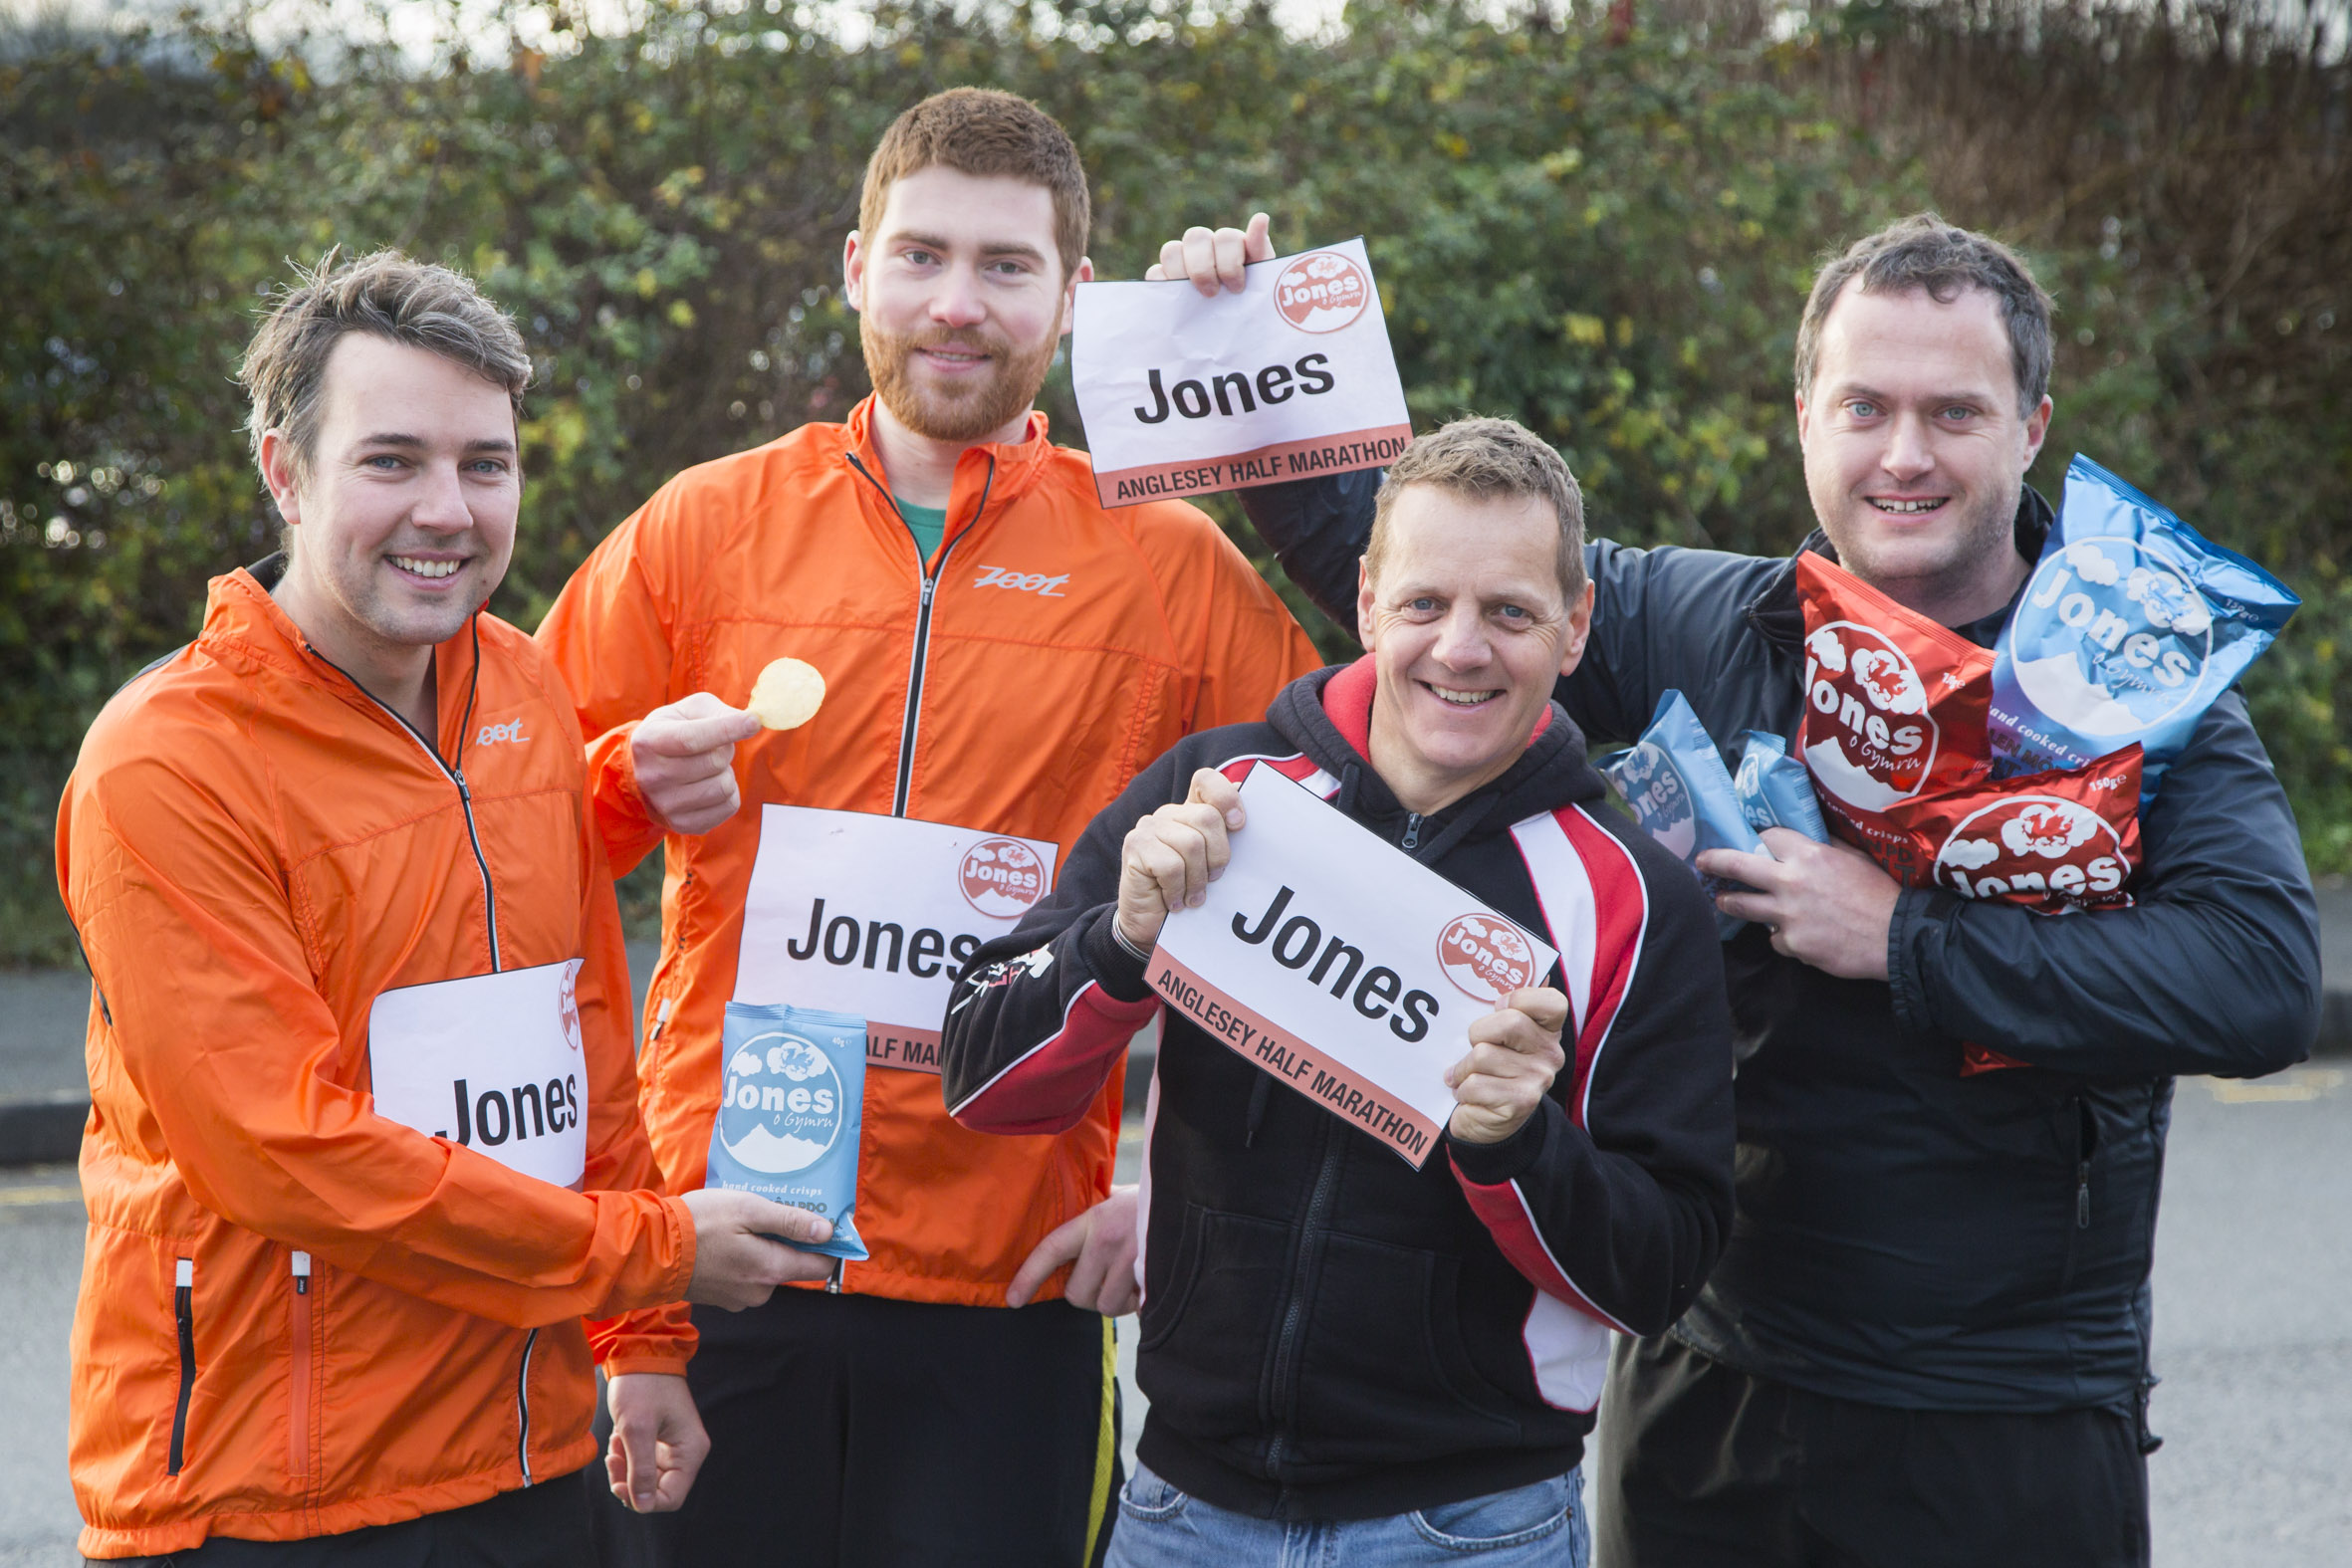 On your marks! Joneses are onthe run to set new world record